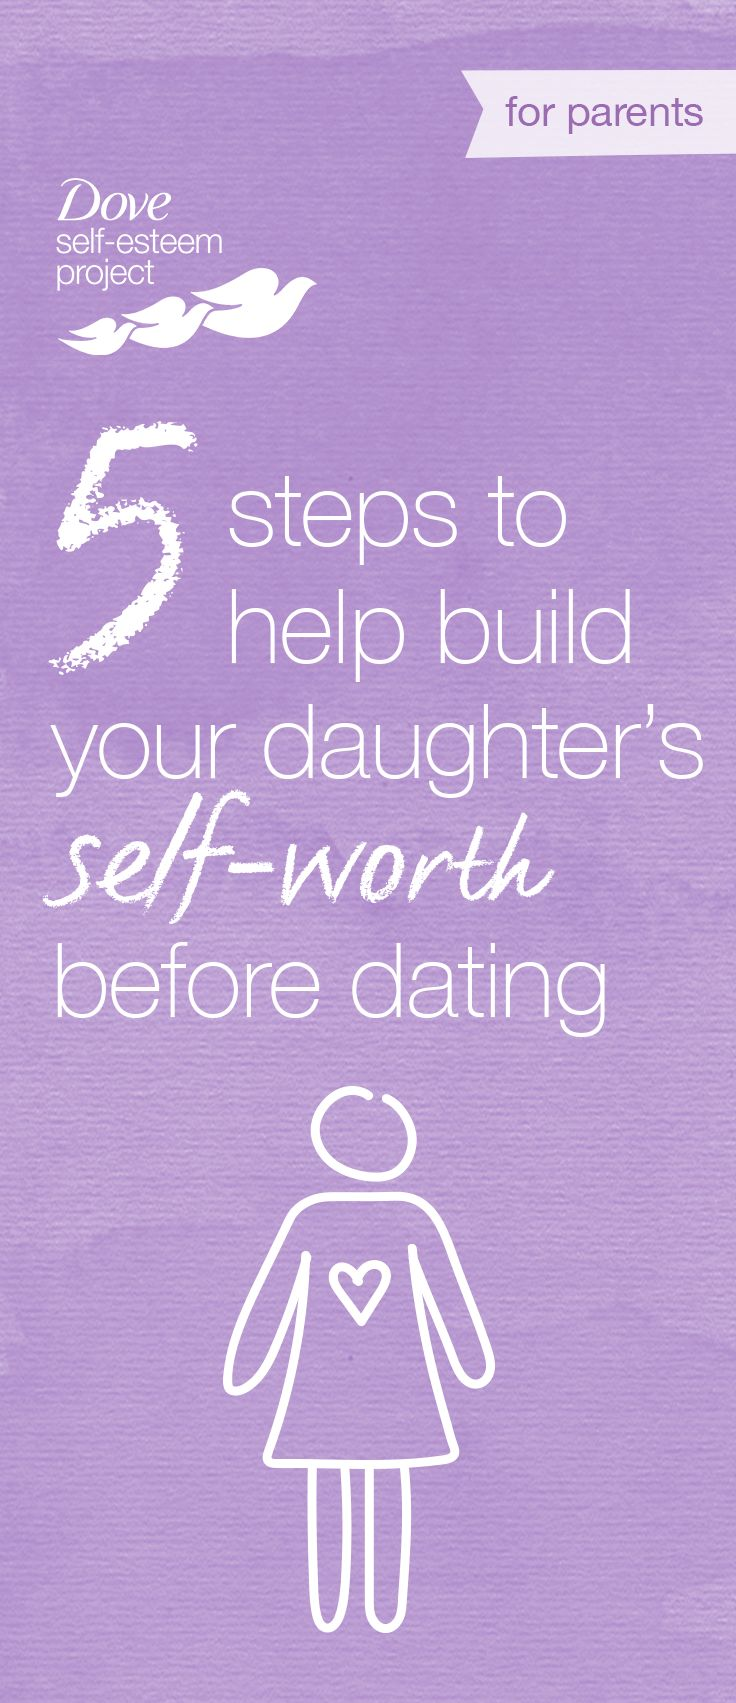 christian parenting tips for teen dating